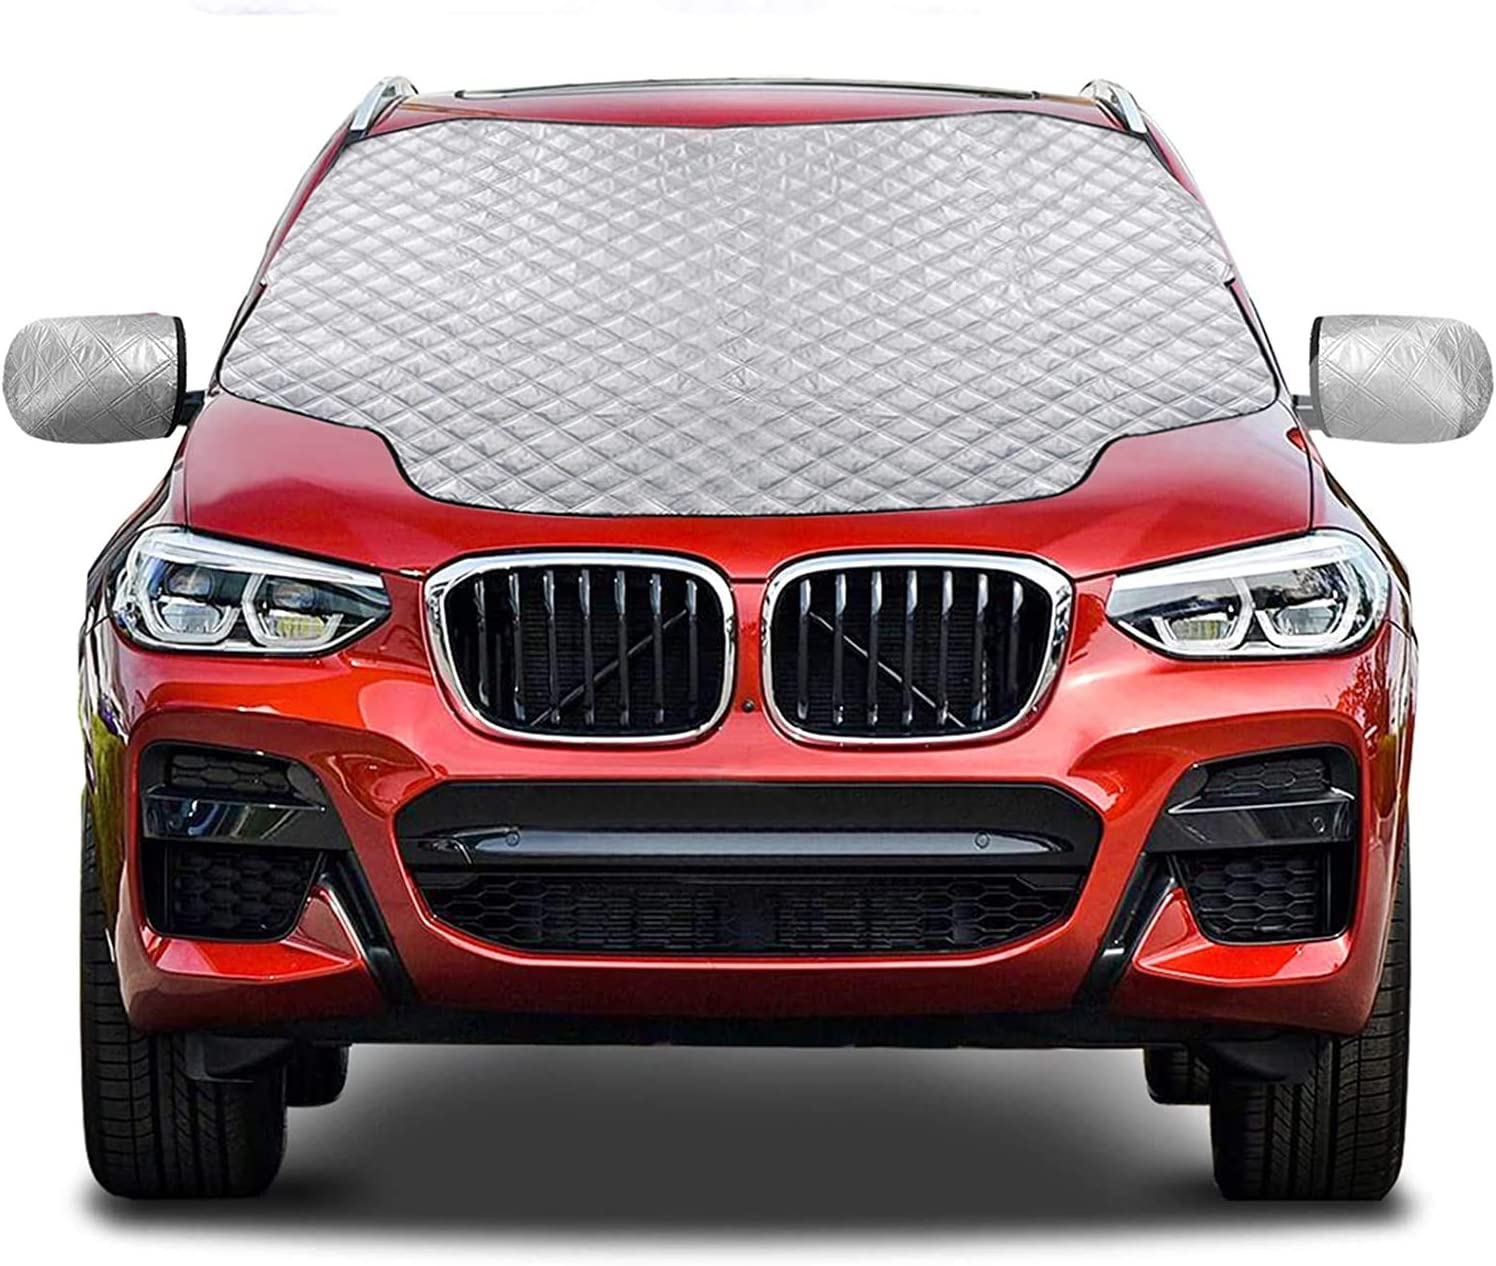 Tenflyer Car Windshield Cover Windshield Magnetic Snow Cover Frost Guard 150/×123cm Fits Most Cars in All Weather Winter Windscreen Cover with Side Wing Mirror Cover Shield Dust Sun Shade UV